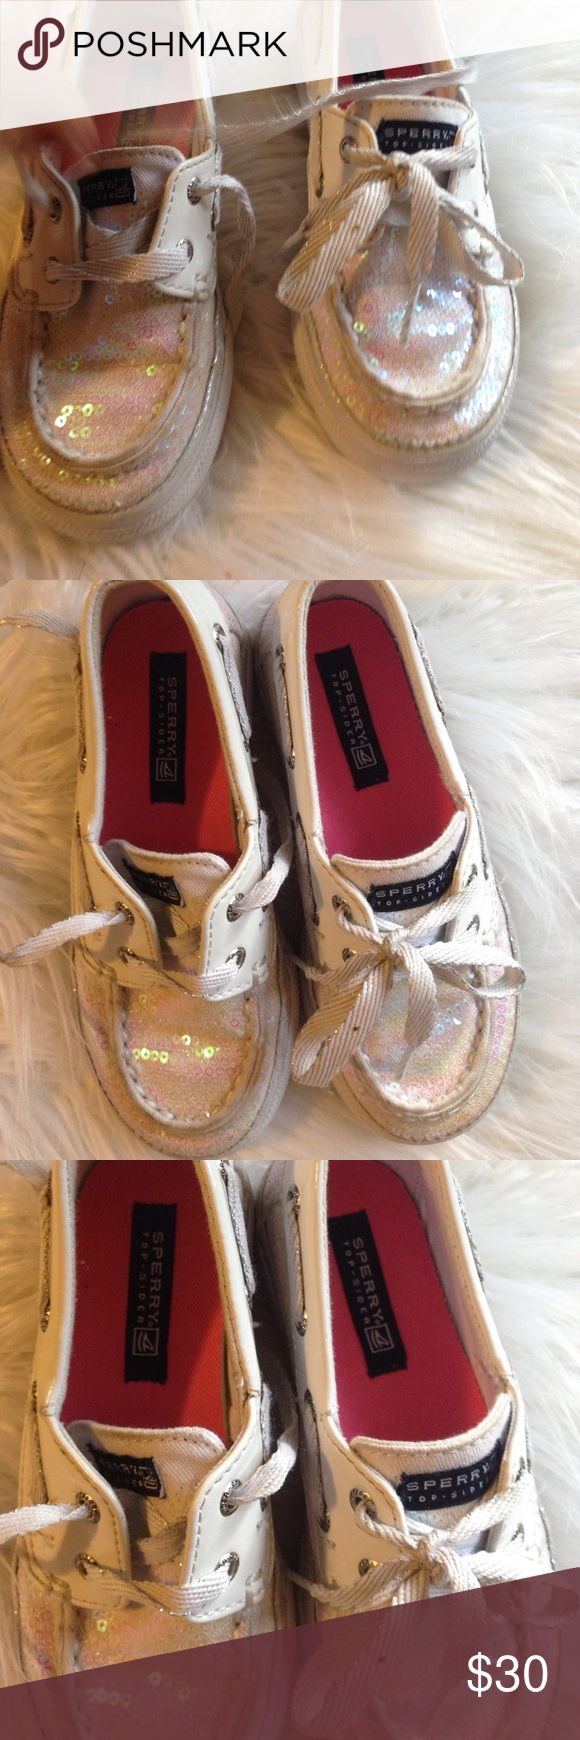 Sperry top sider size 10 m girls shoes Sperry top sider size 10m girls shoes Sperry Top-Sider Shoes Flats & Loafers